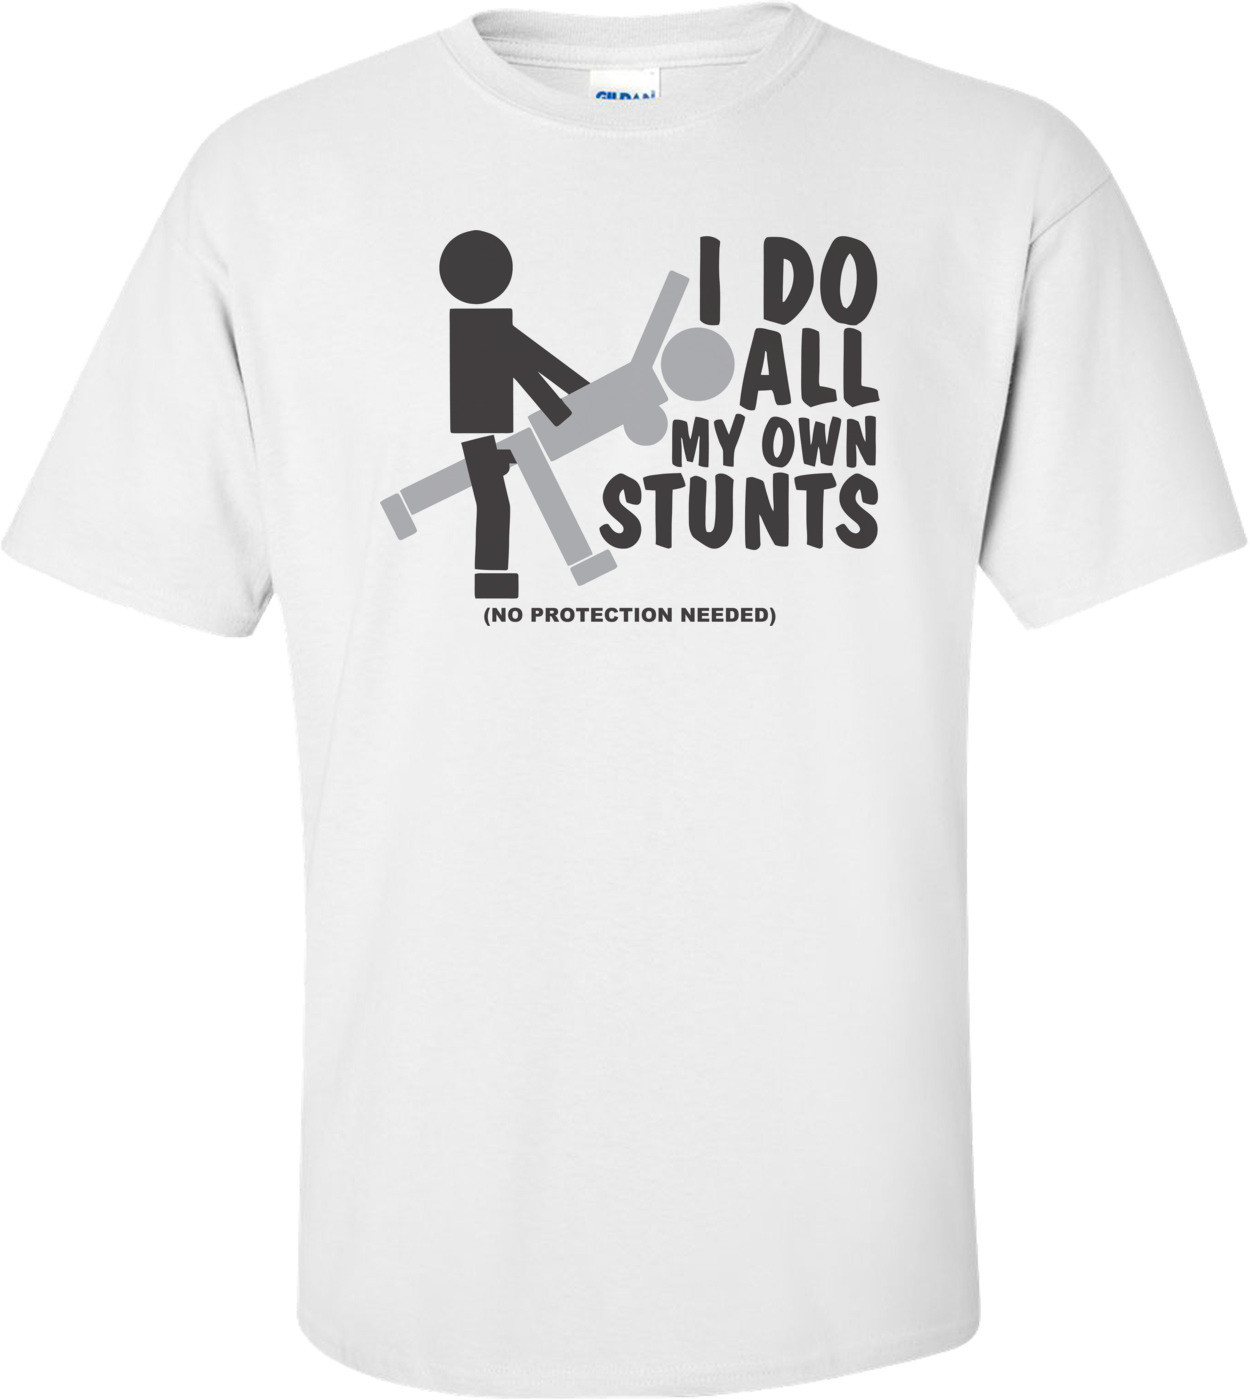 I Do All My Own Stunts, No Protection Needed T-shirt